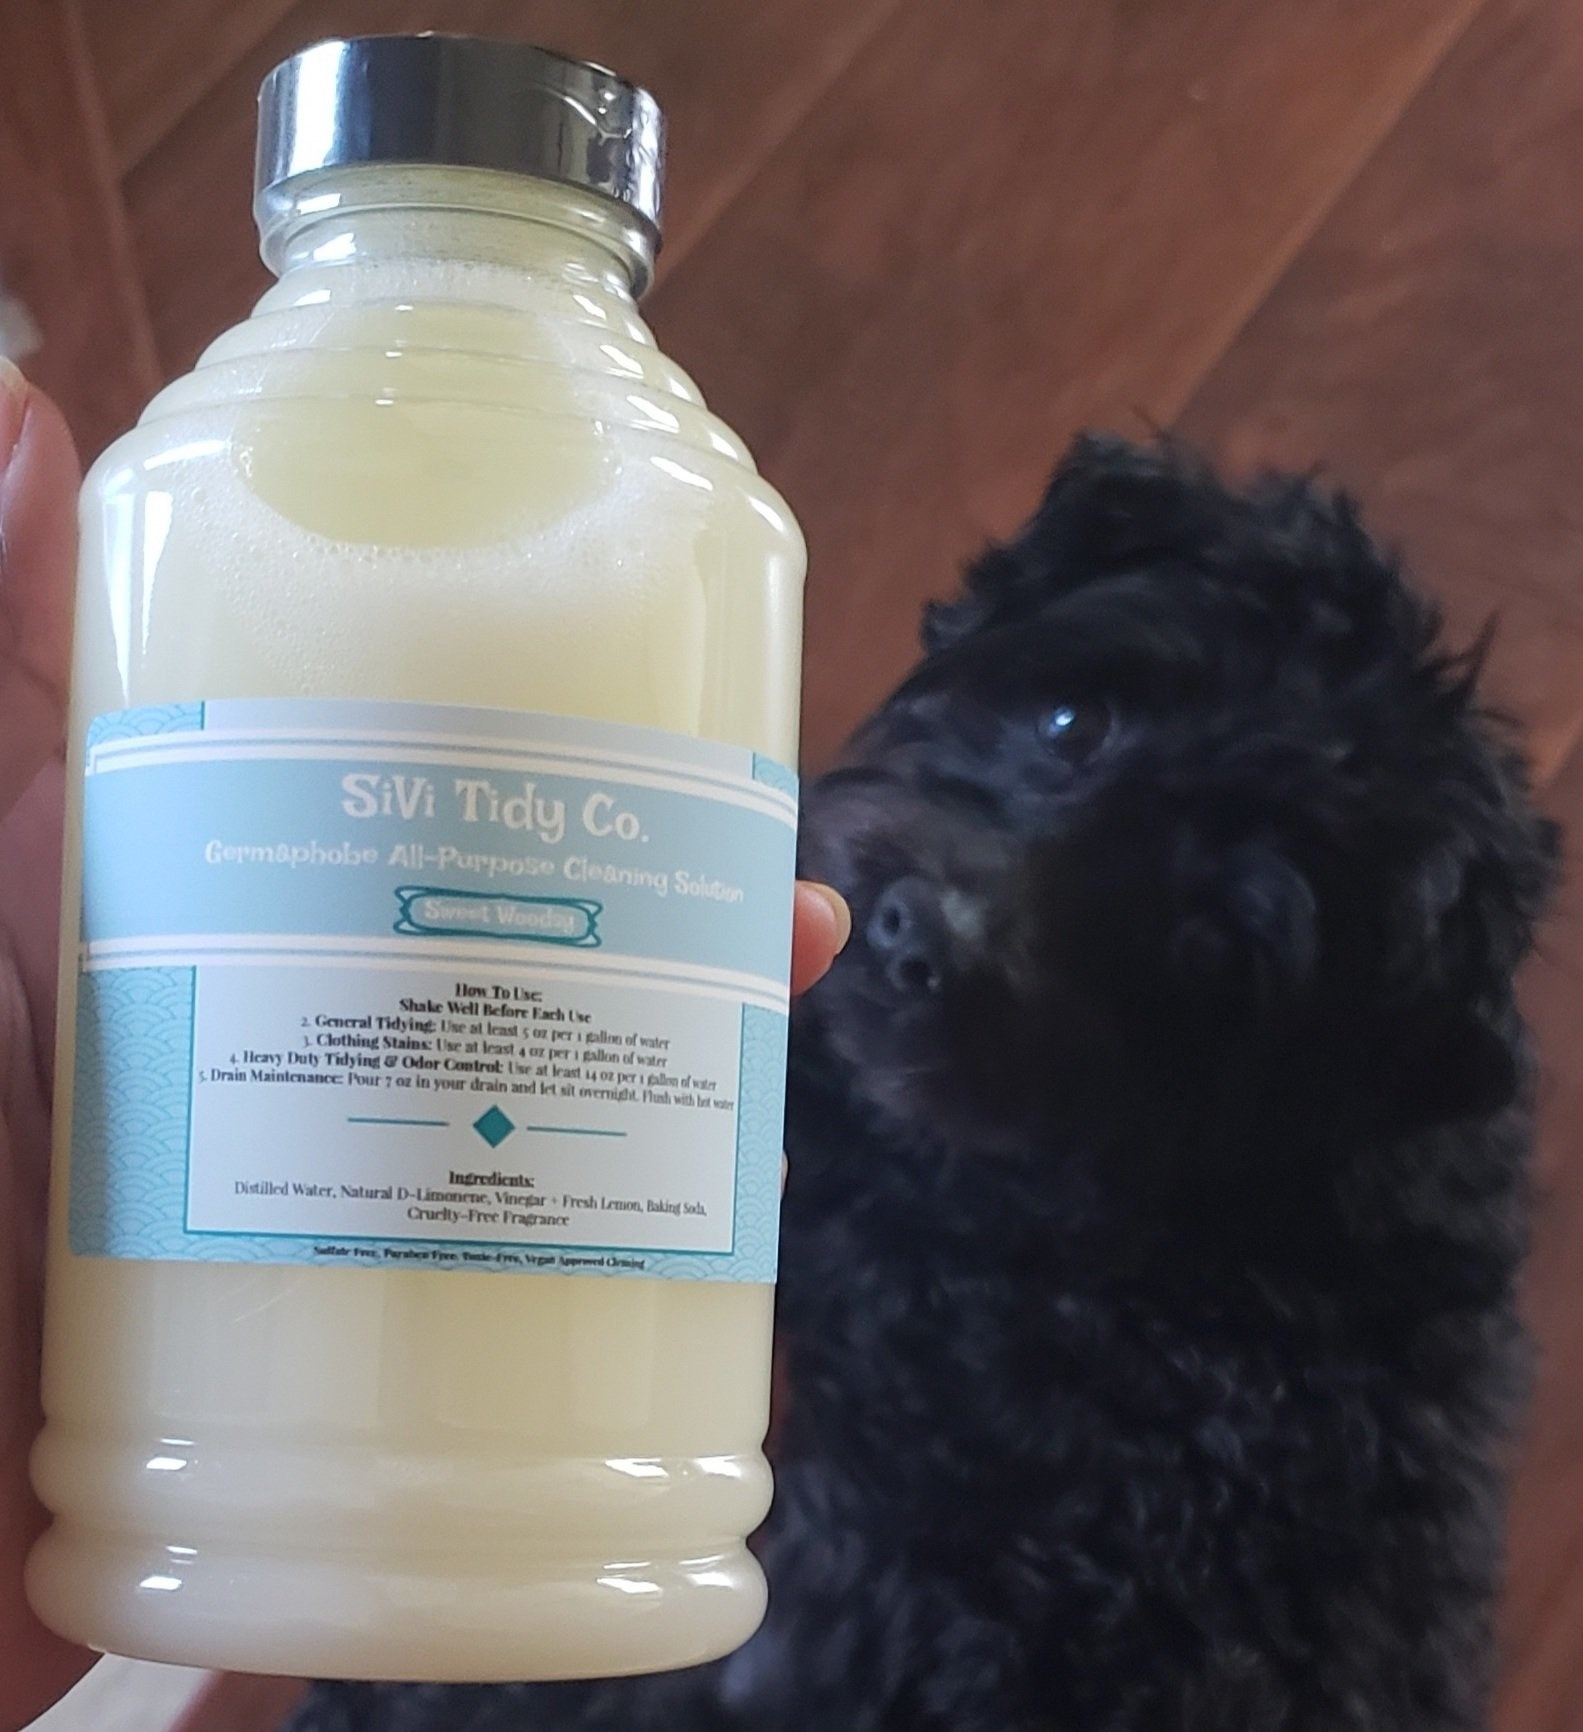 the bottle of sivi tidy co. cleaning solution next to a black dog